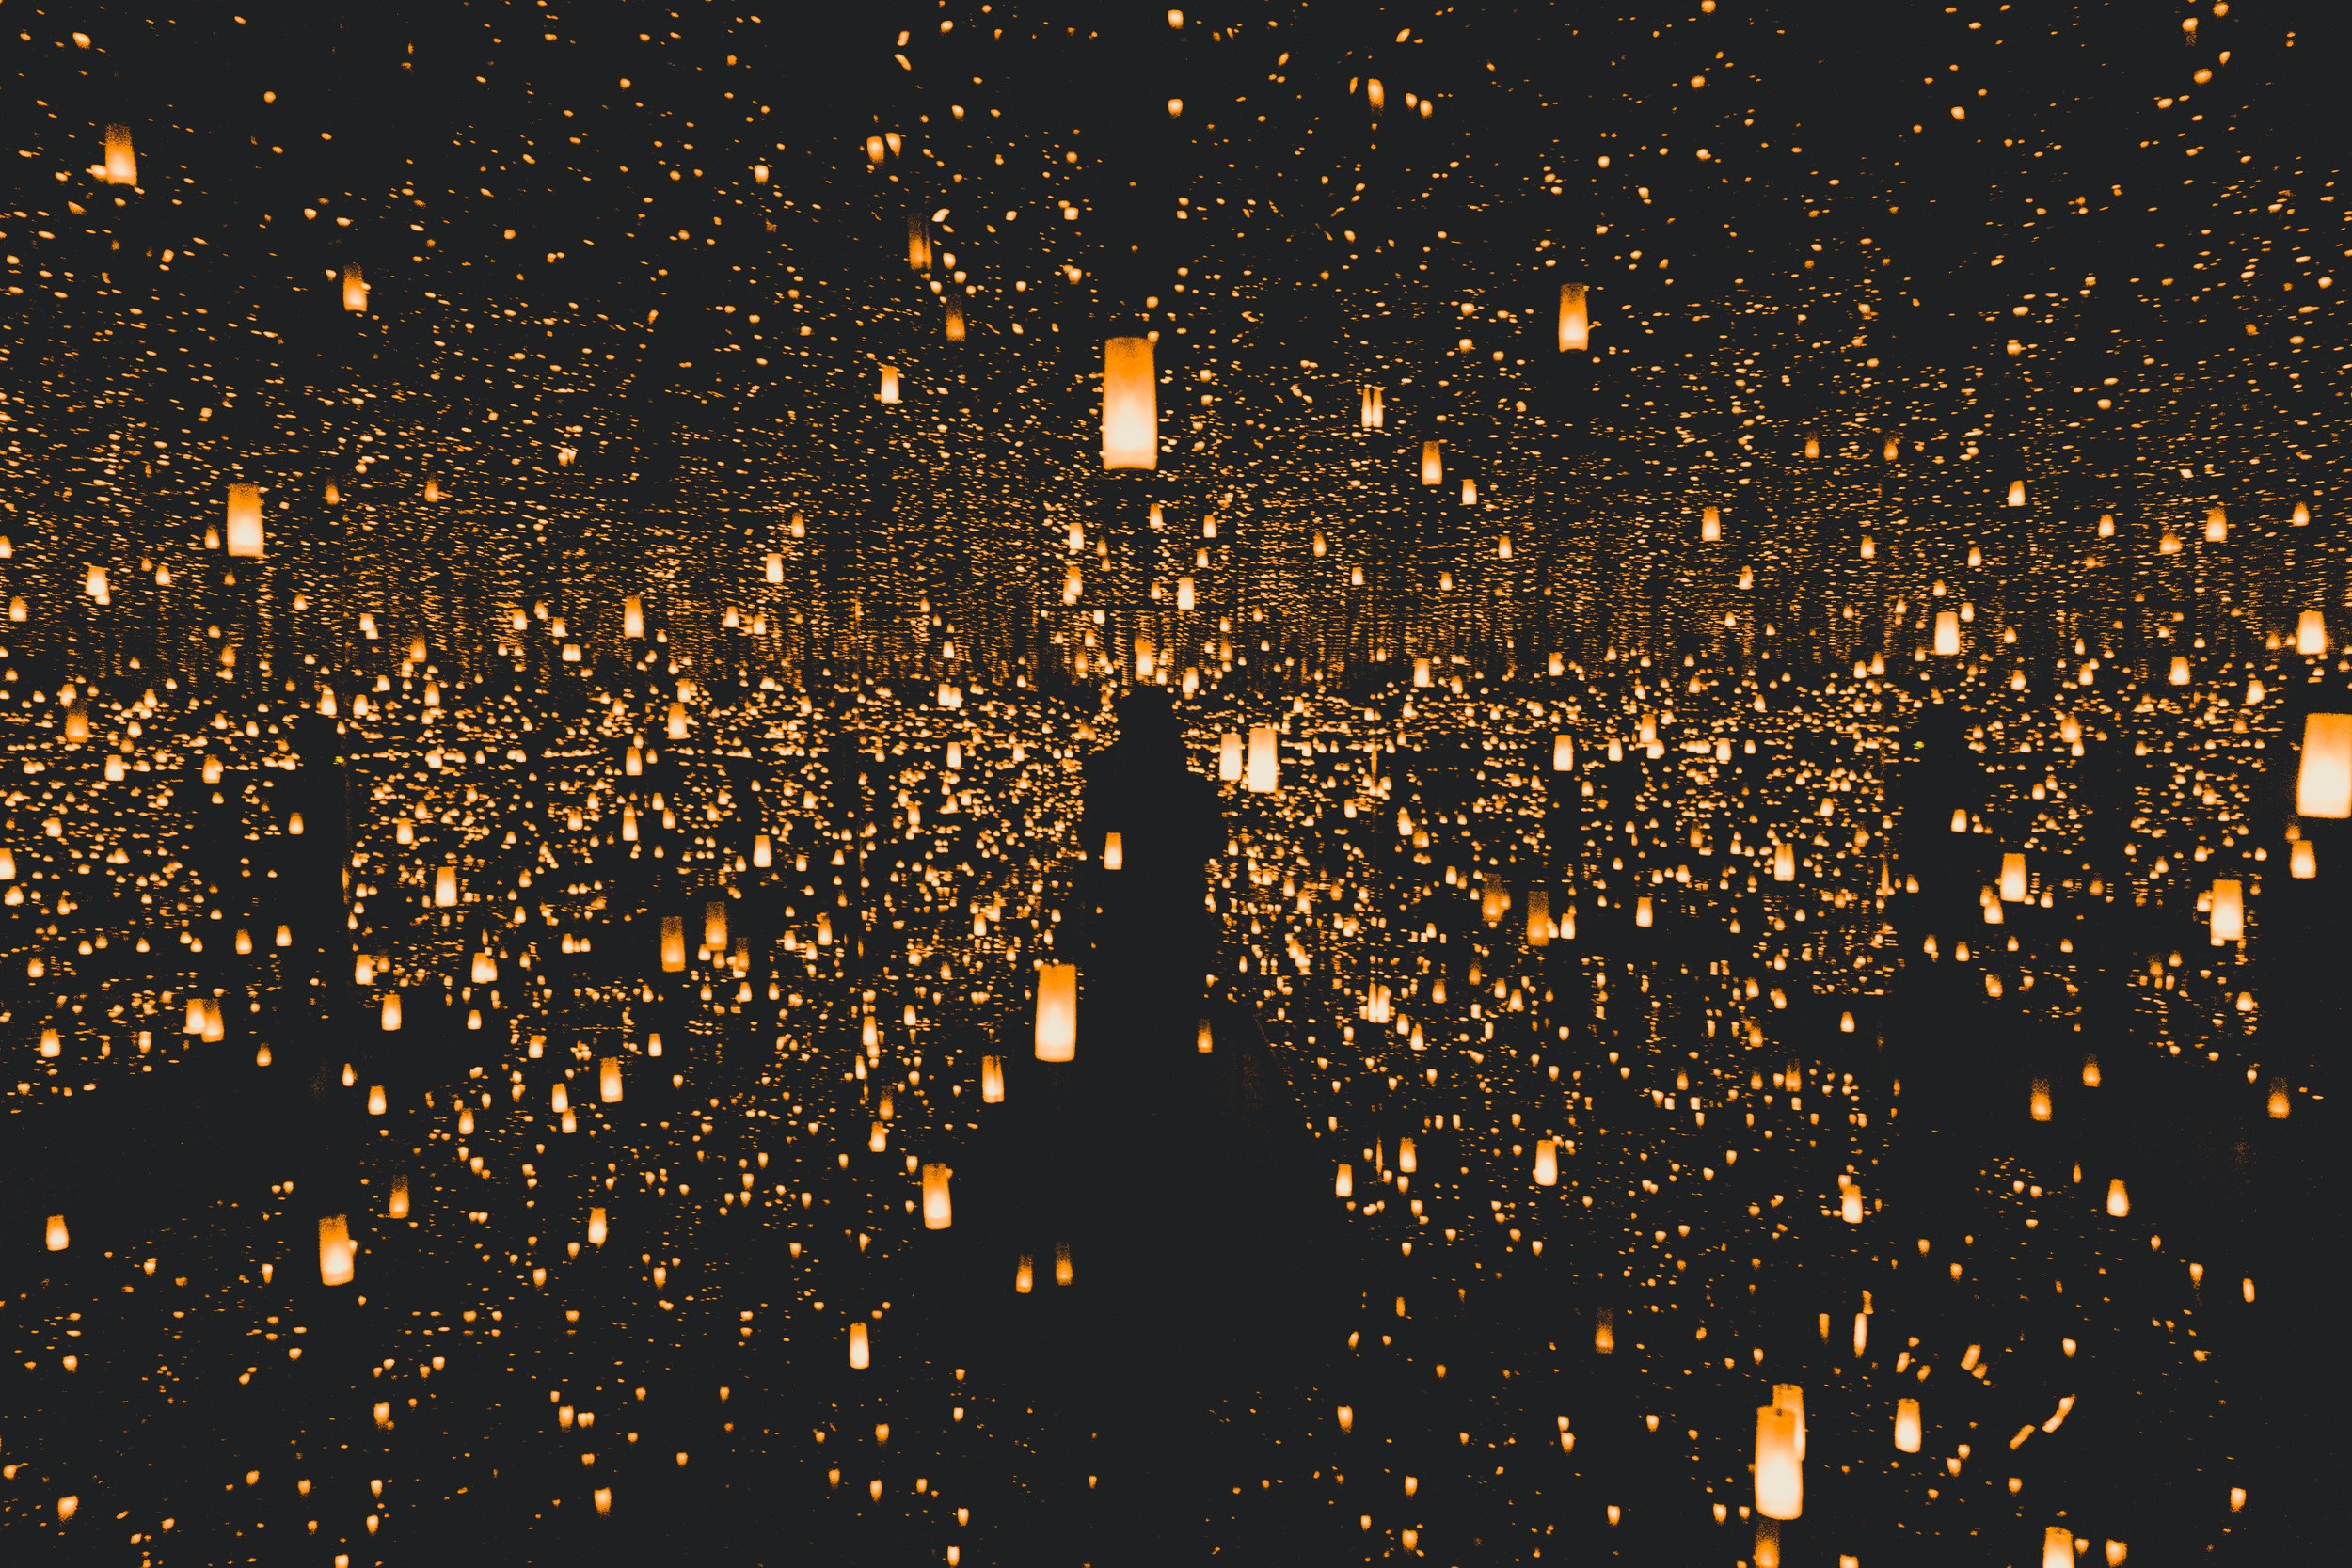 lights-unsplash.jpg